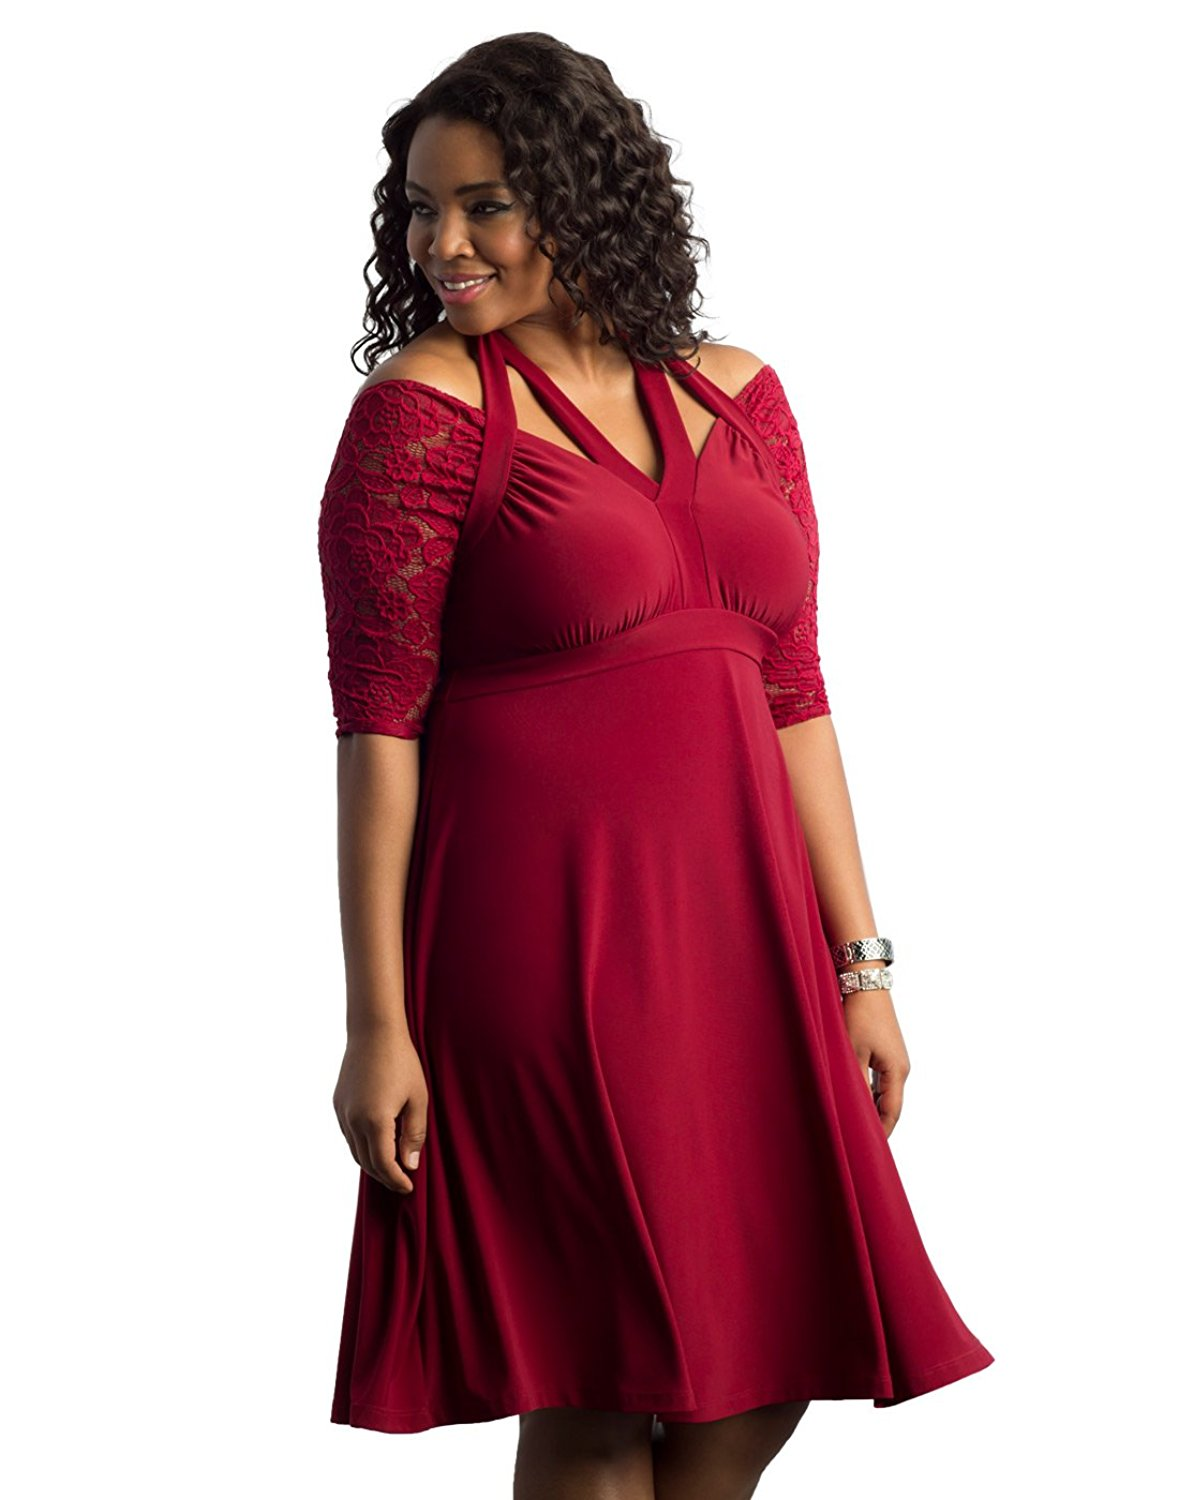 556f5d49584 Buy Kiyonna Womens Plus Size Astoria Lace Peplum Gown in Cheap Price ...